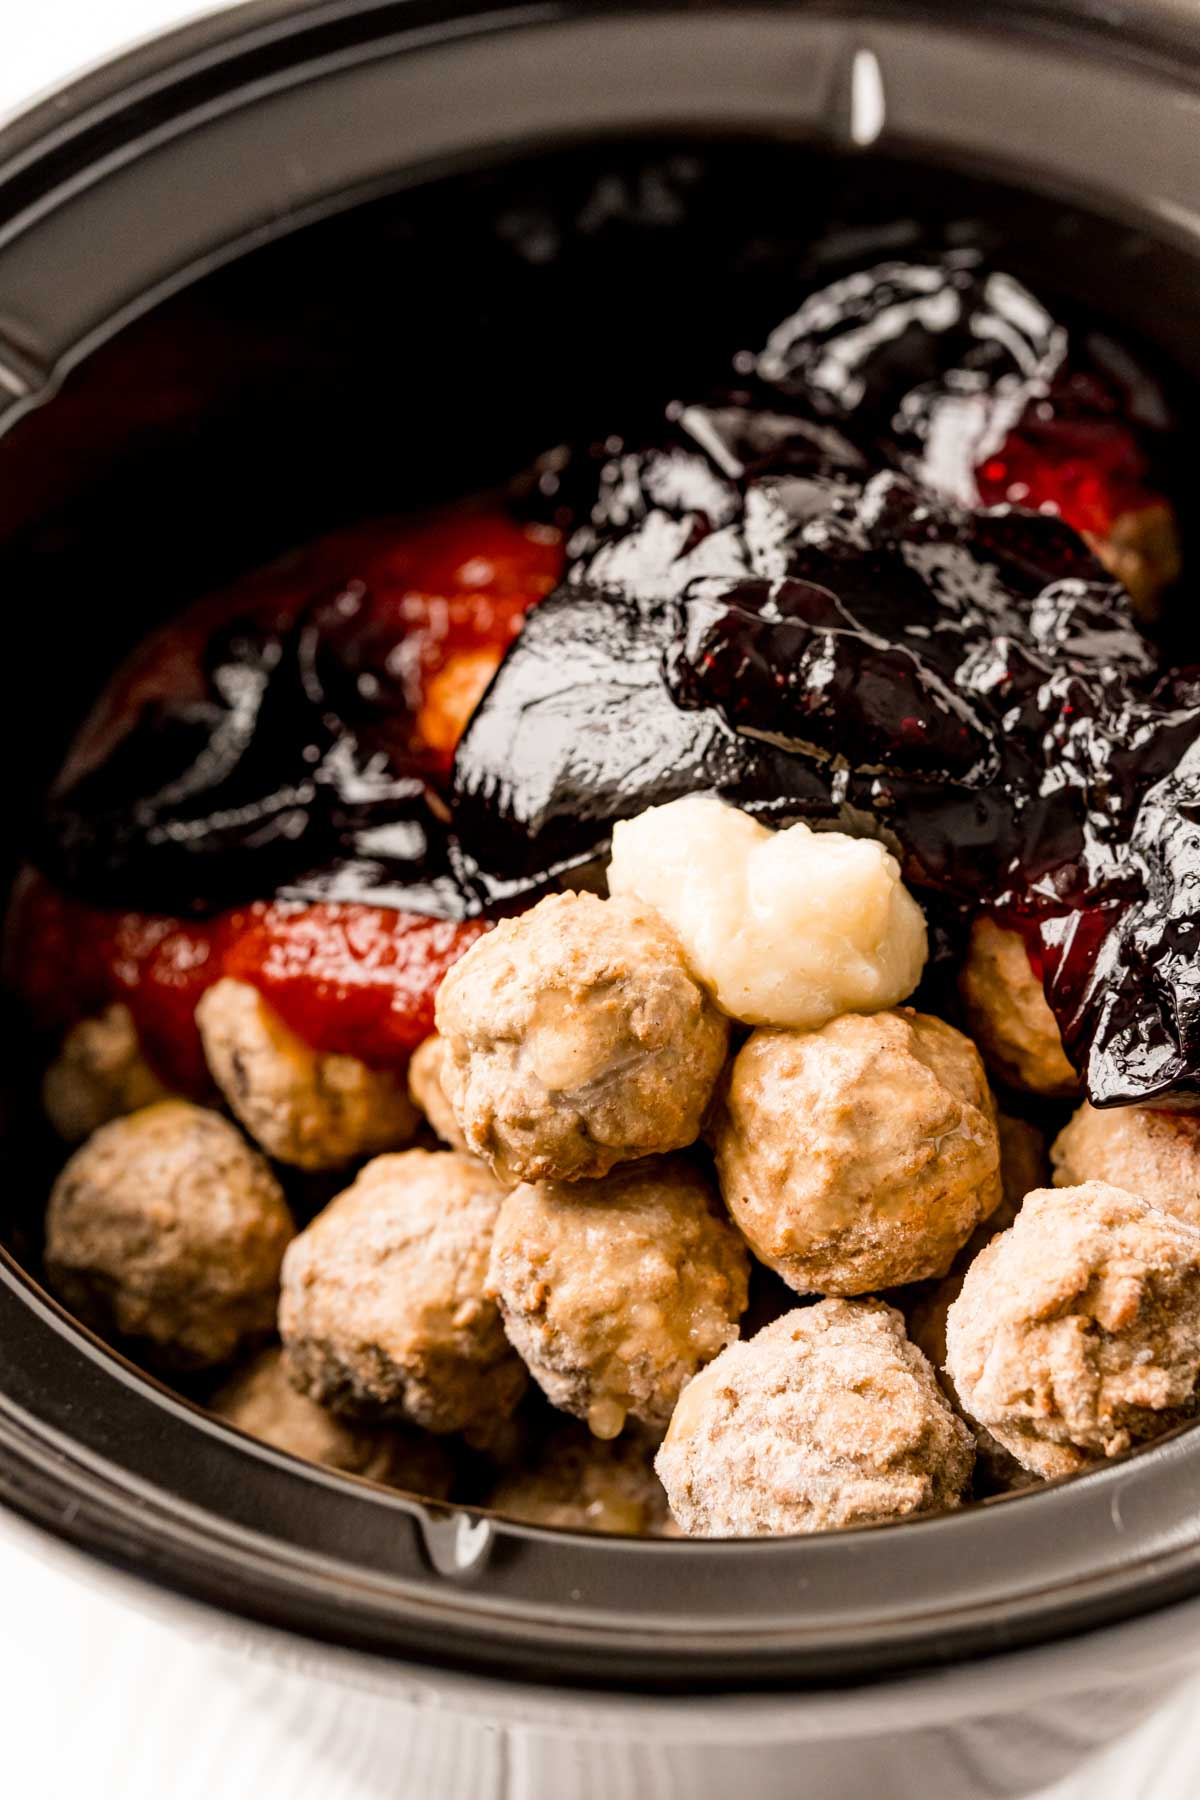 Frozen meatballs, grape jelly, and chili sauce in slow cooker